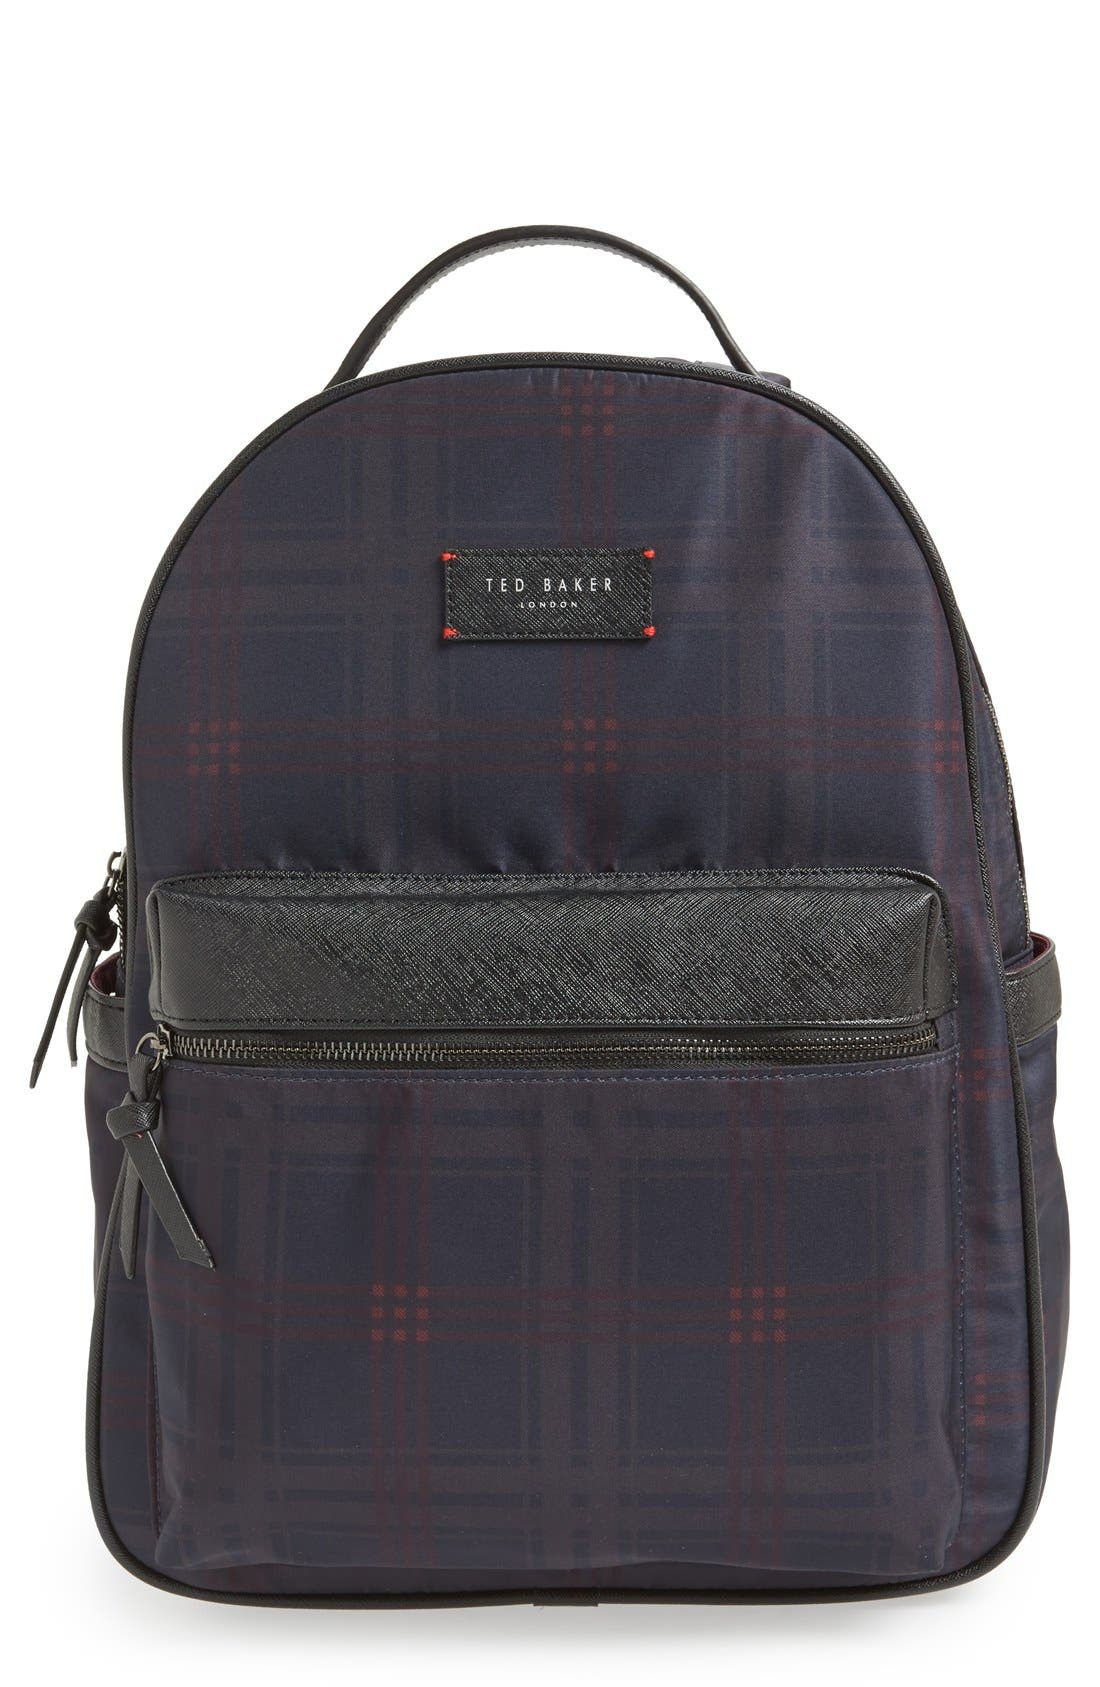 TED BAKER LONDON 'Amilio' Backpack, Main, color, 410